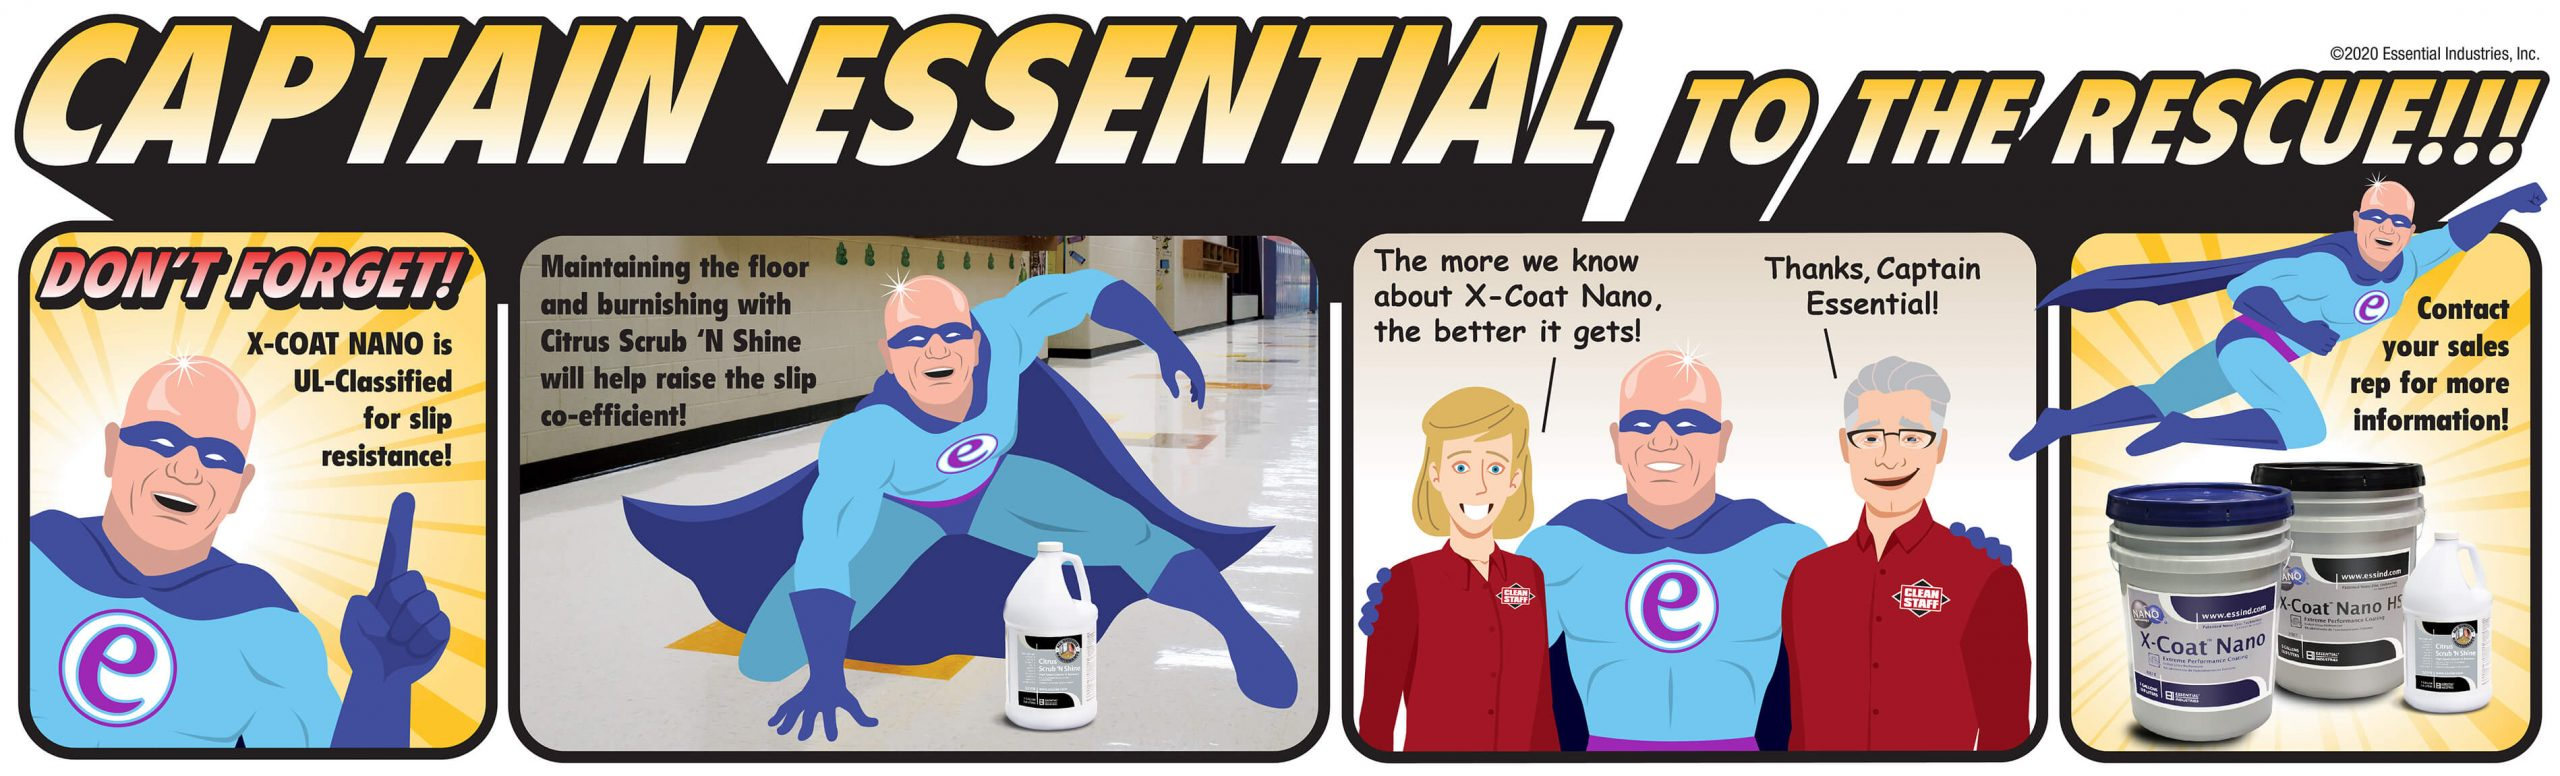 """Captain Essential to the rescue!!! Captain Essential says, """"Don't forget! X-Coat Nano is UL-Classified for slip resistance!"""" The captain then shows and explains that """"Maintaining the floor and burnishing with Citrus Scrub 'N Shine will help raise the slip co-efficient!"""" We then have some Clean Staff members exclaim, """"The more we know about X-Coat Nano, the better it gets! Thanks Captain Essential!"""" As the captain flies off we see the product line of X-Coat Nano Floor Finish, X-Coat Nano HS Floor Finish and Citrus Scrub 'N Shine Restorer. As Captain Essential flies away, he says, """"Contact your sales rep for more information!"""""""